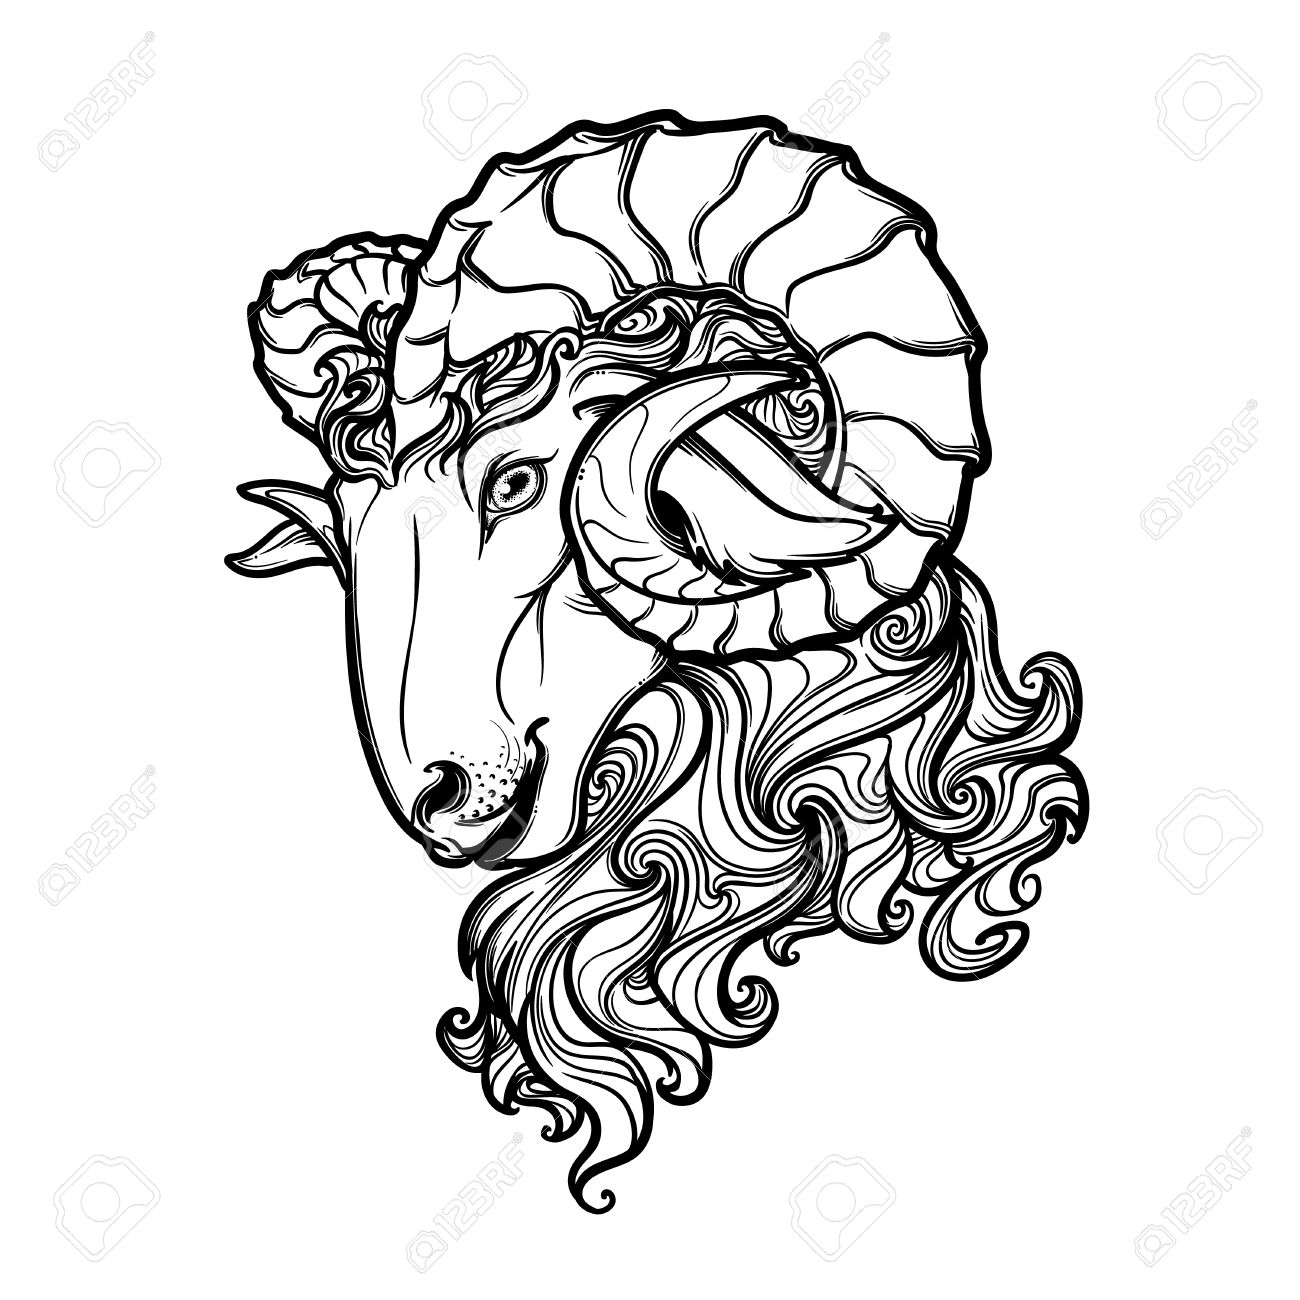 1300x1300 Side View Of A Ram Head With Big Twisted Horns. Intricate Hand